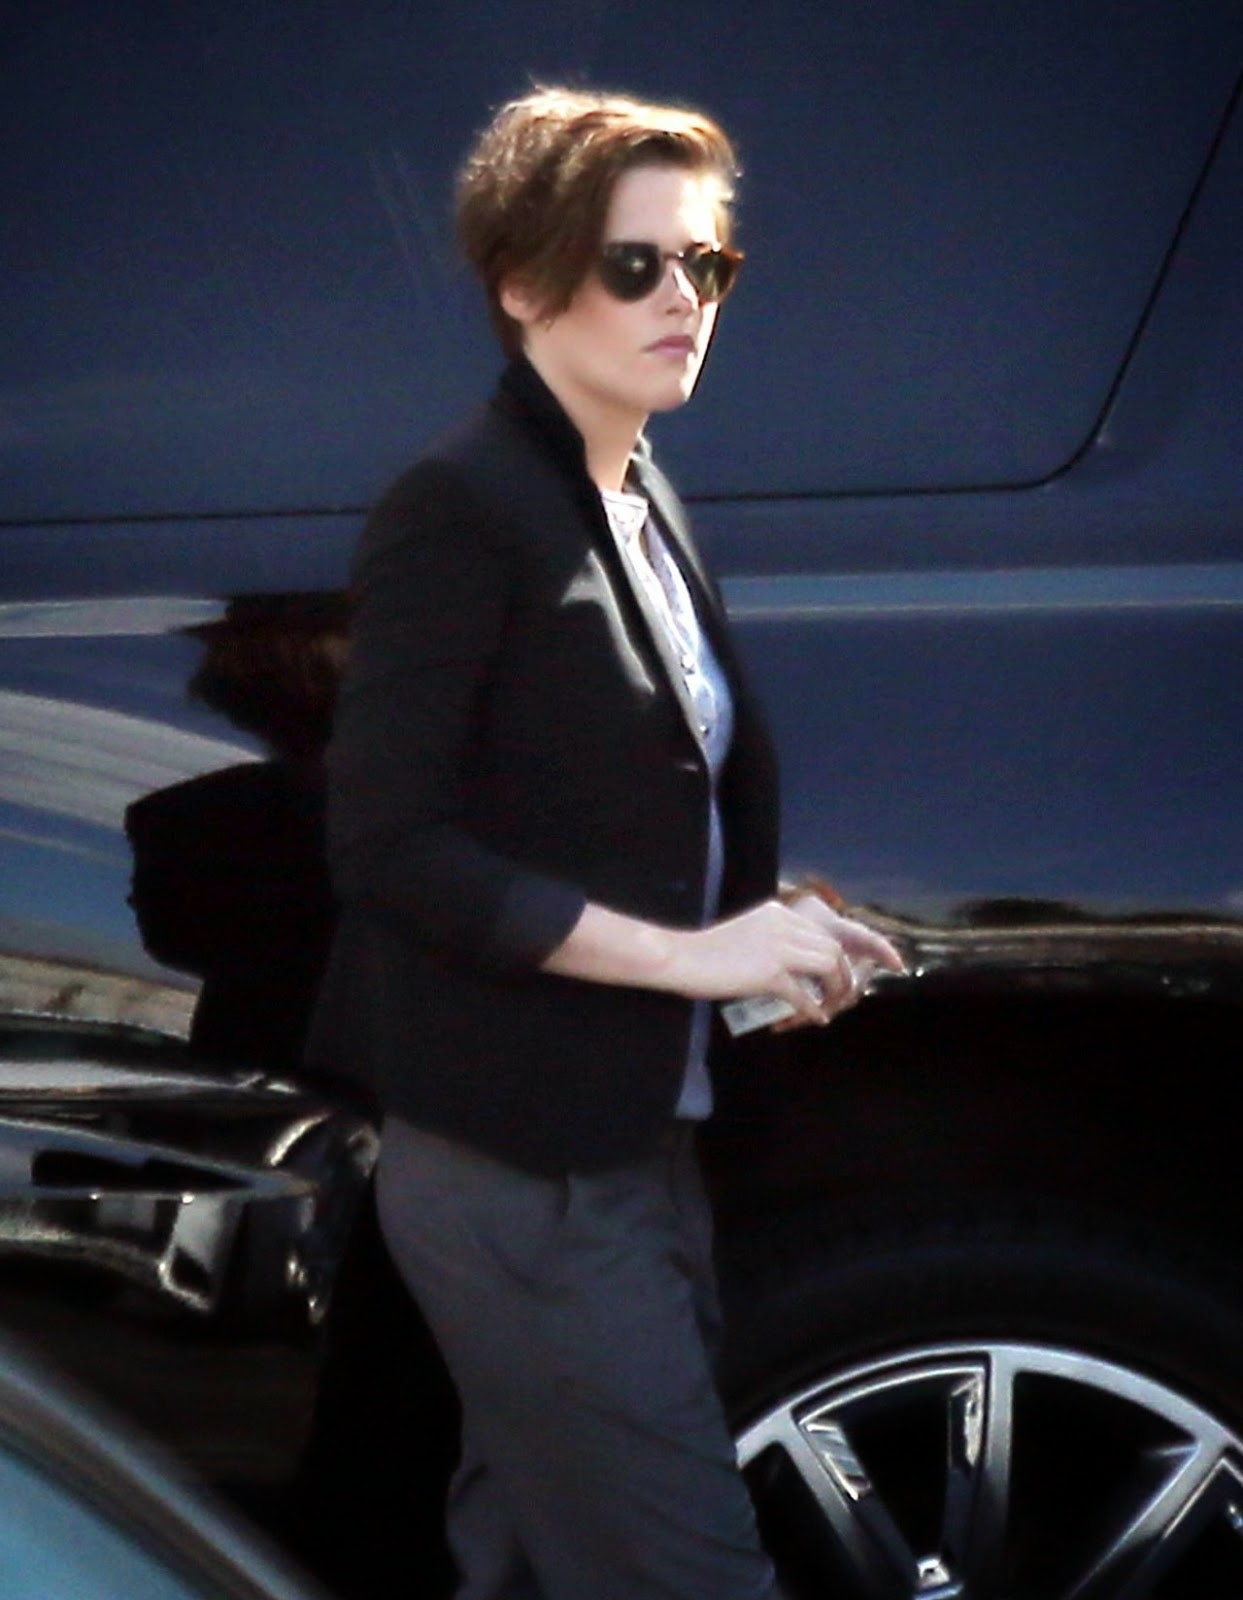 Kristen Stewart spotted smoking out and about in Los Angeles